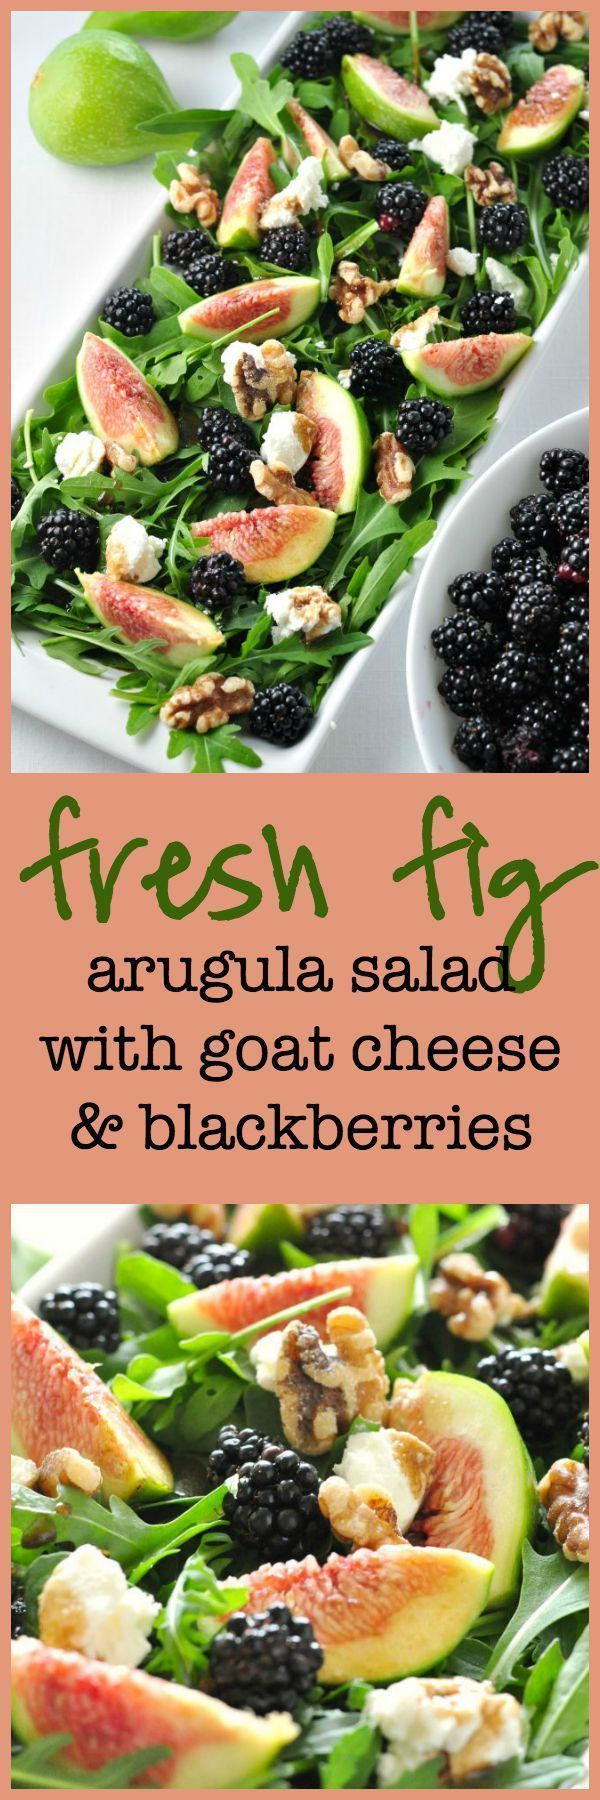 Fresh Fig Arugula Salad with Blackberries, Goat cheese and Walnuts. Full of anti-oxidants! This salad is so pretty, seriously tasty, and packed full of healthy greens, berries, nuts, cheese and figs!